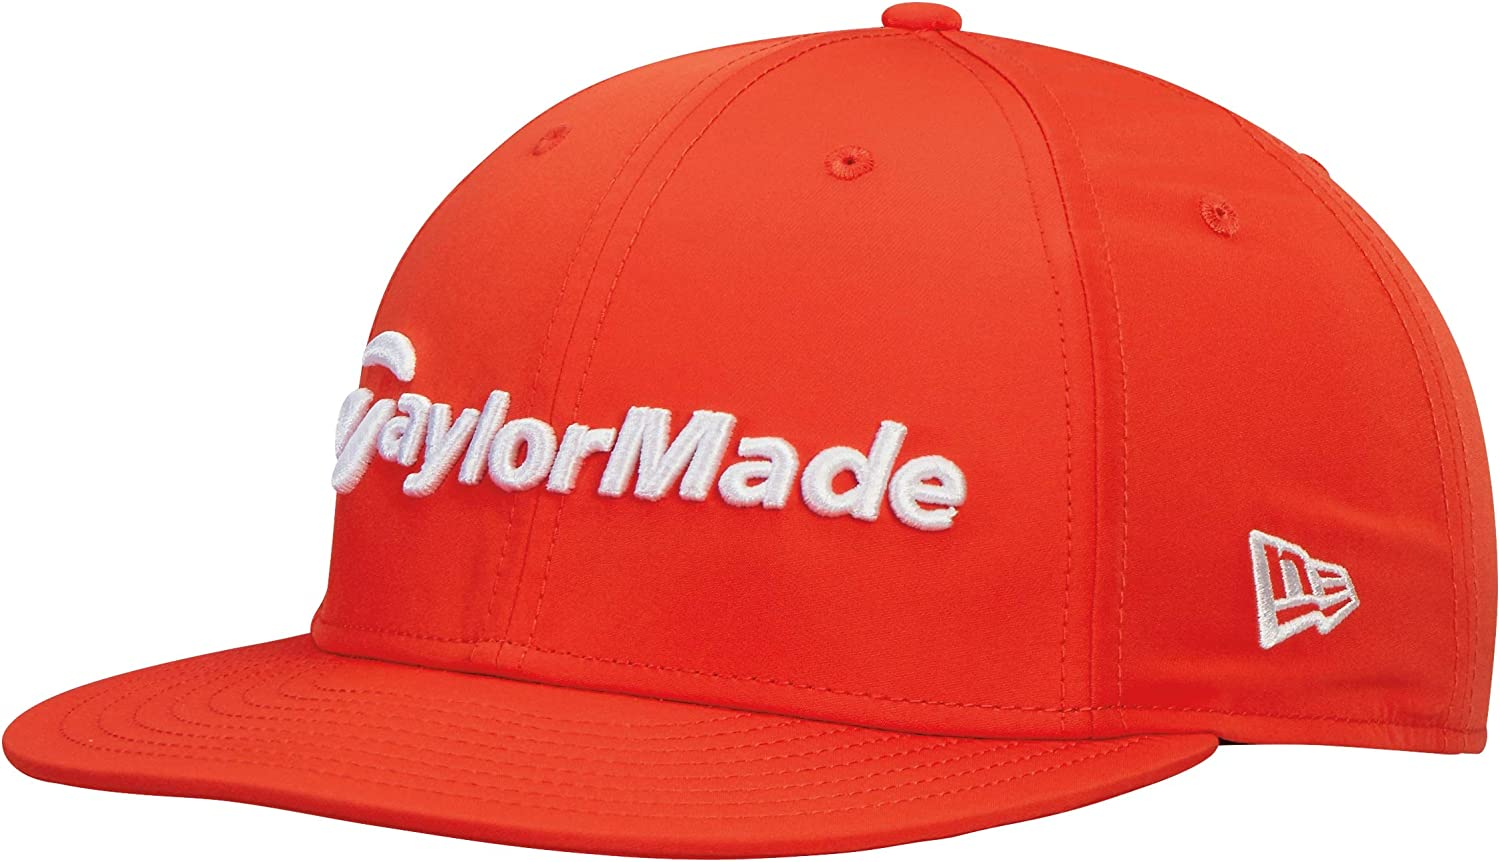 Arancione One Size TaylorMade Uomo Performance 9fifty Cappello